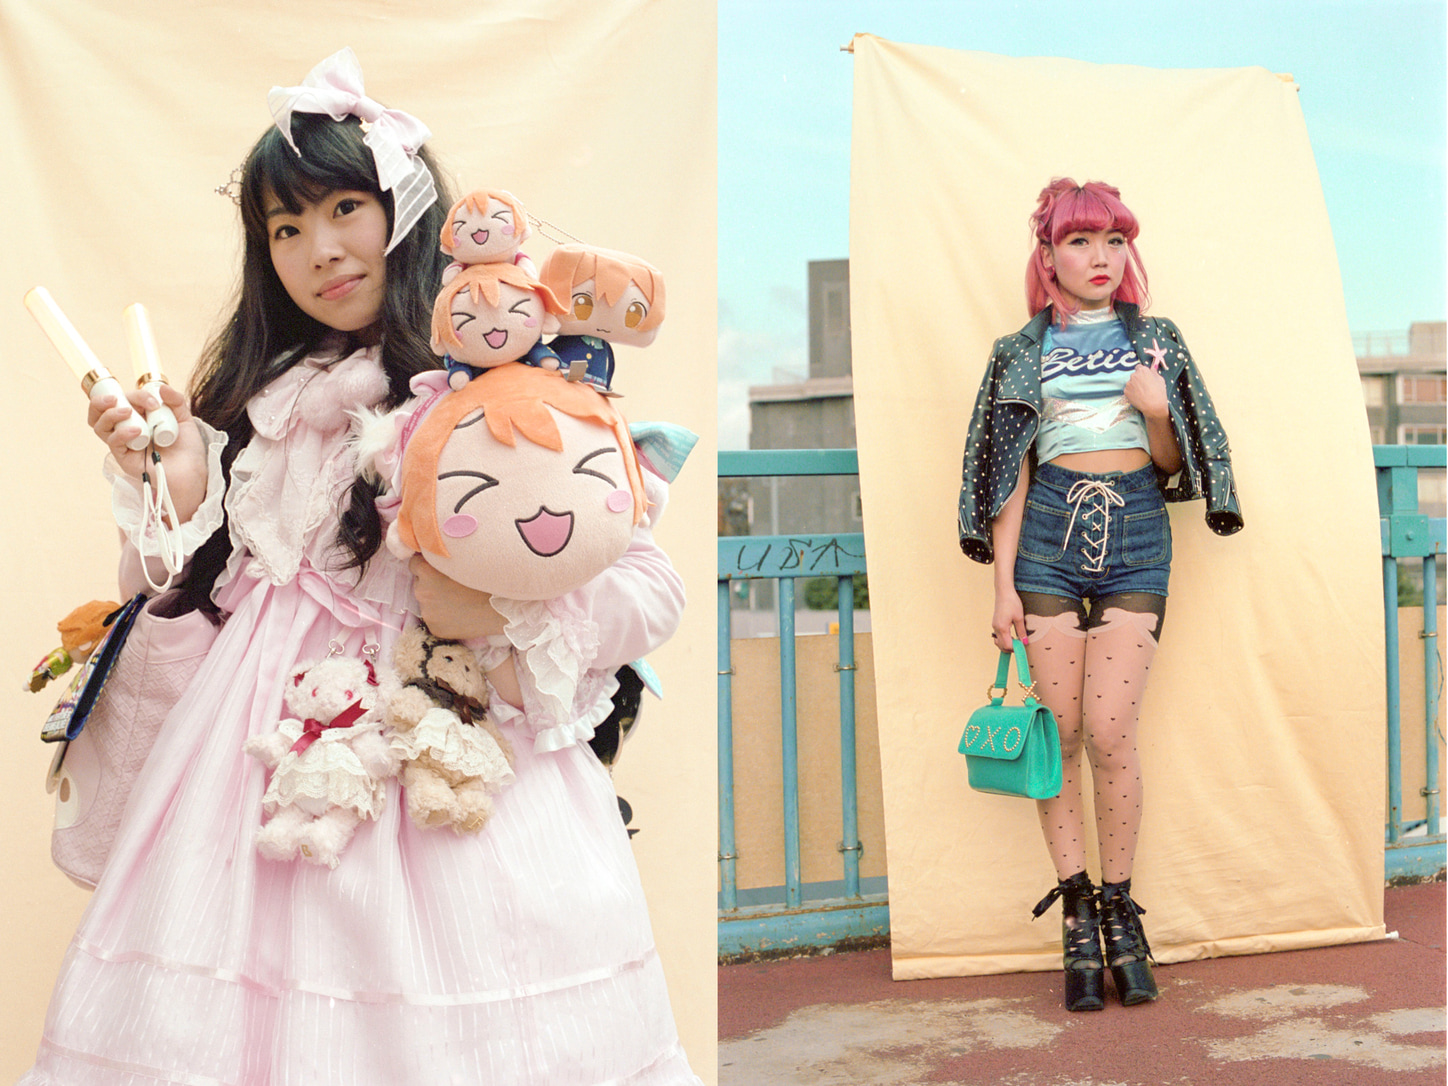 Many Japanese women s kawaii aspirations have long been dictated by popular  culture and the media in a male-dominated society. Are those pastel colors 110d4690a